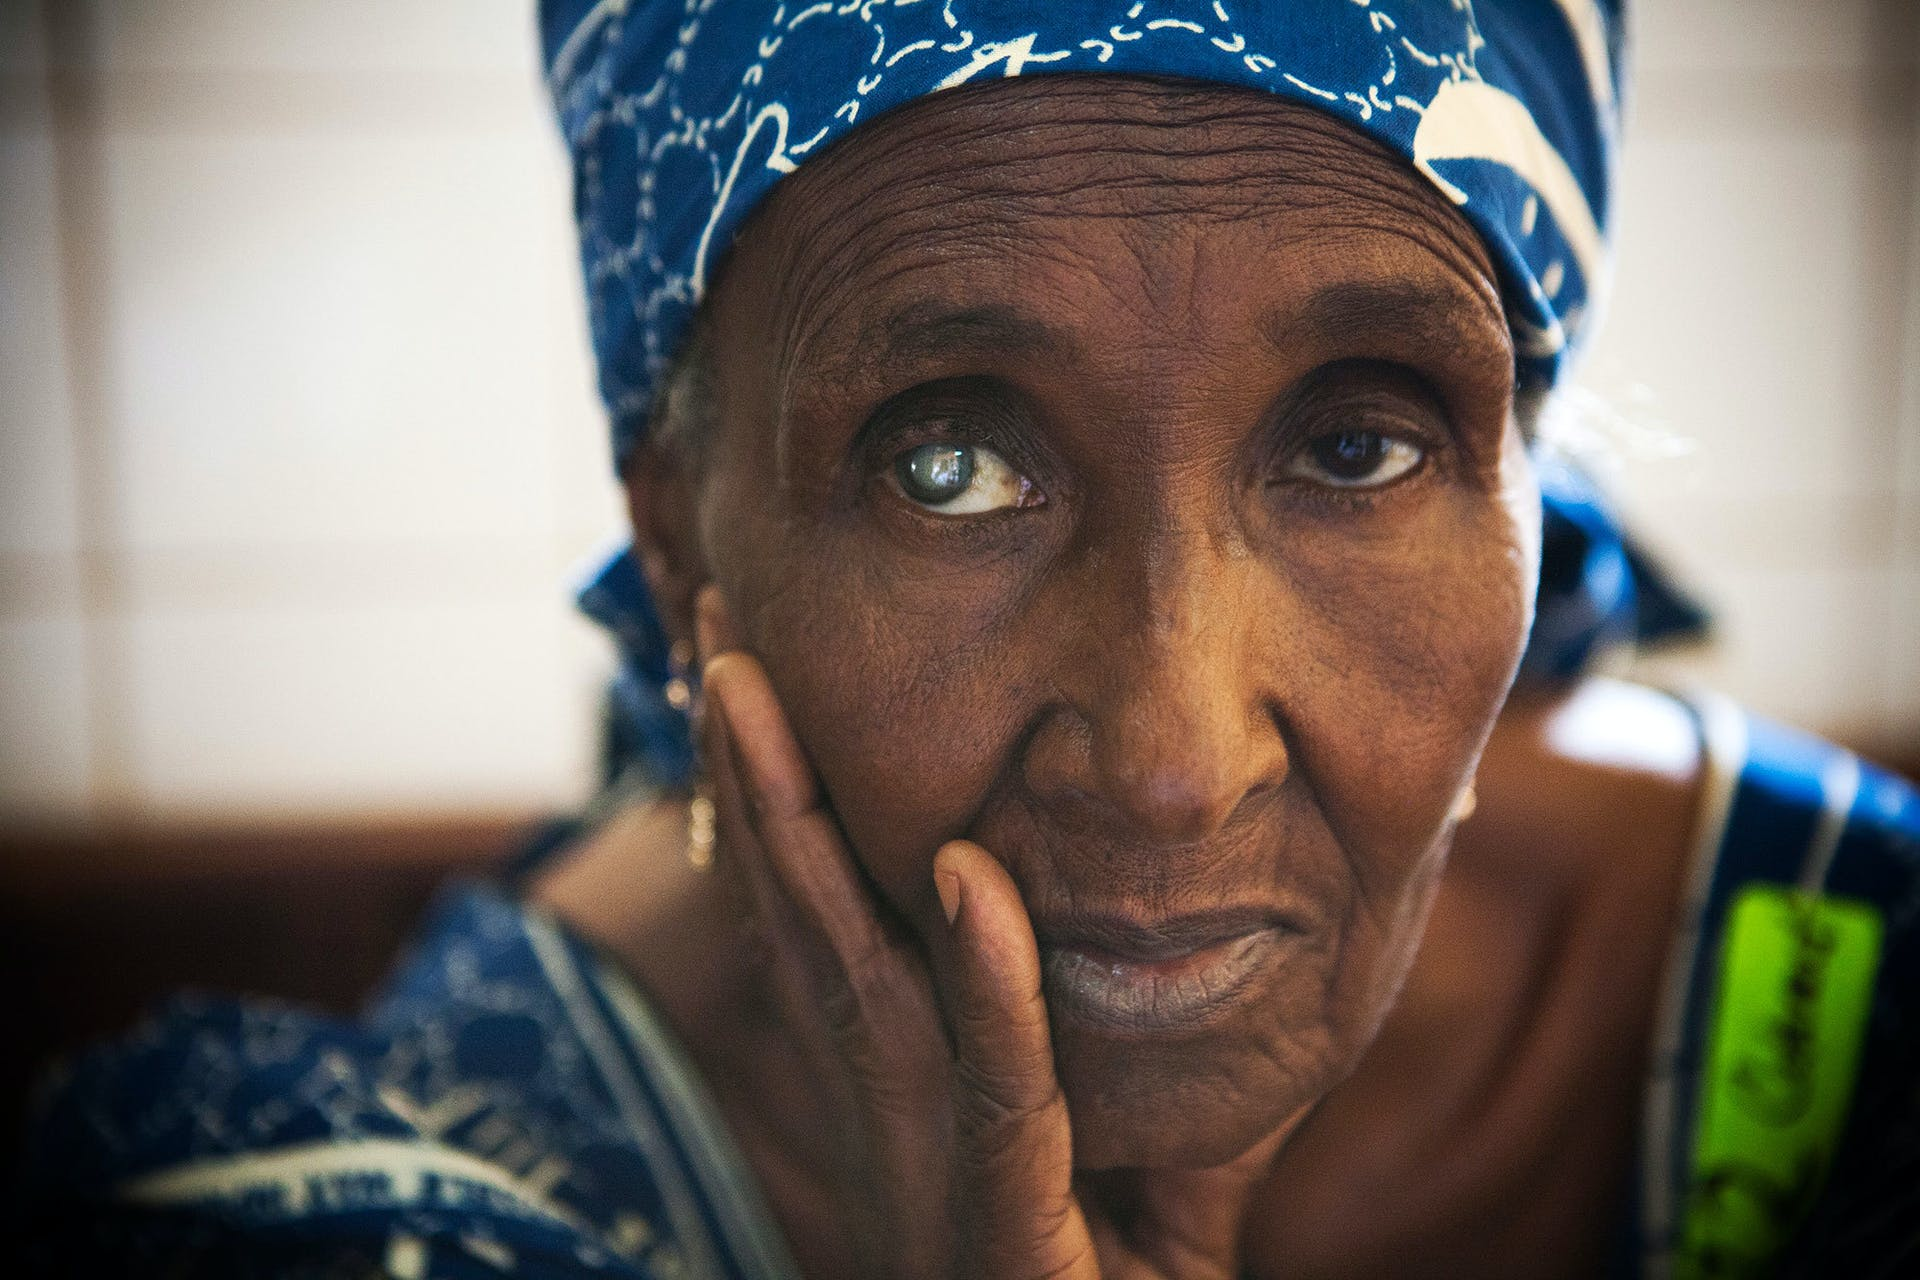 Aissatou from Cameroon waits for cataract surgery